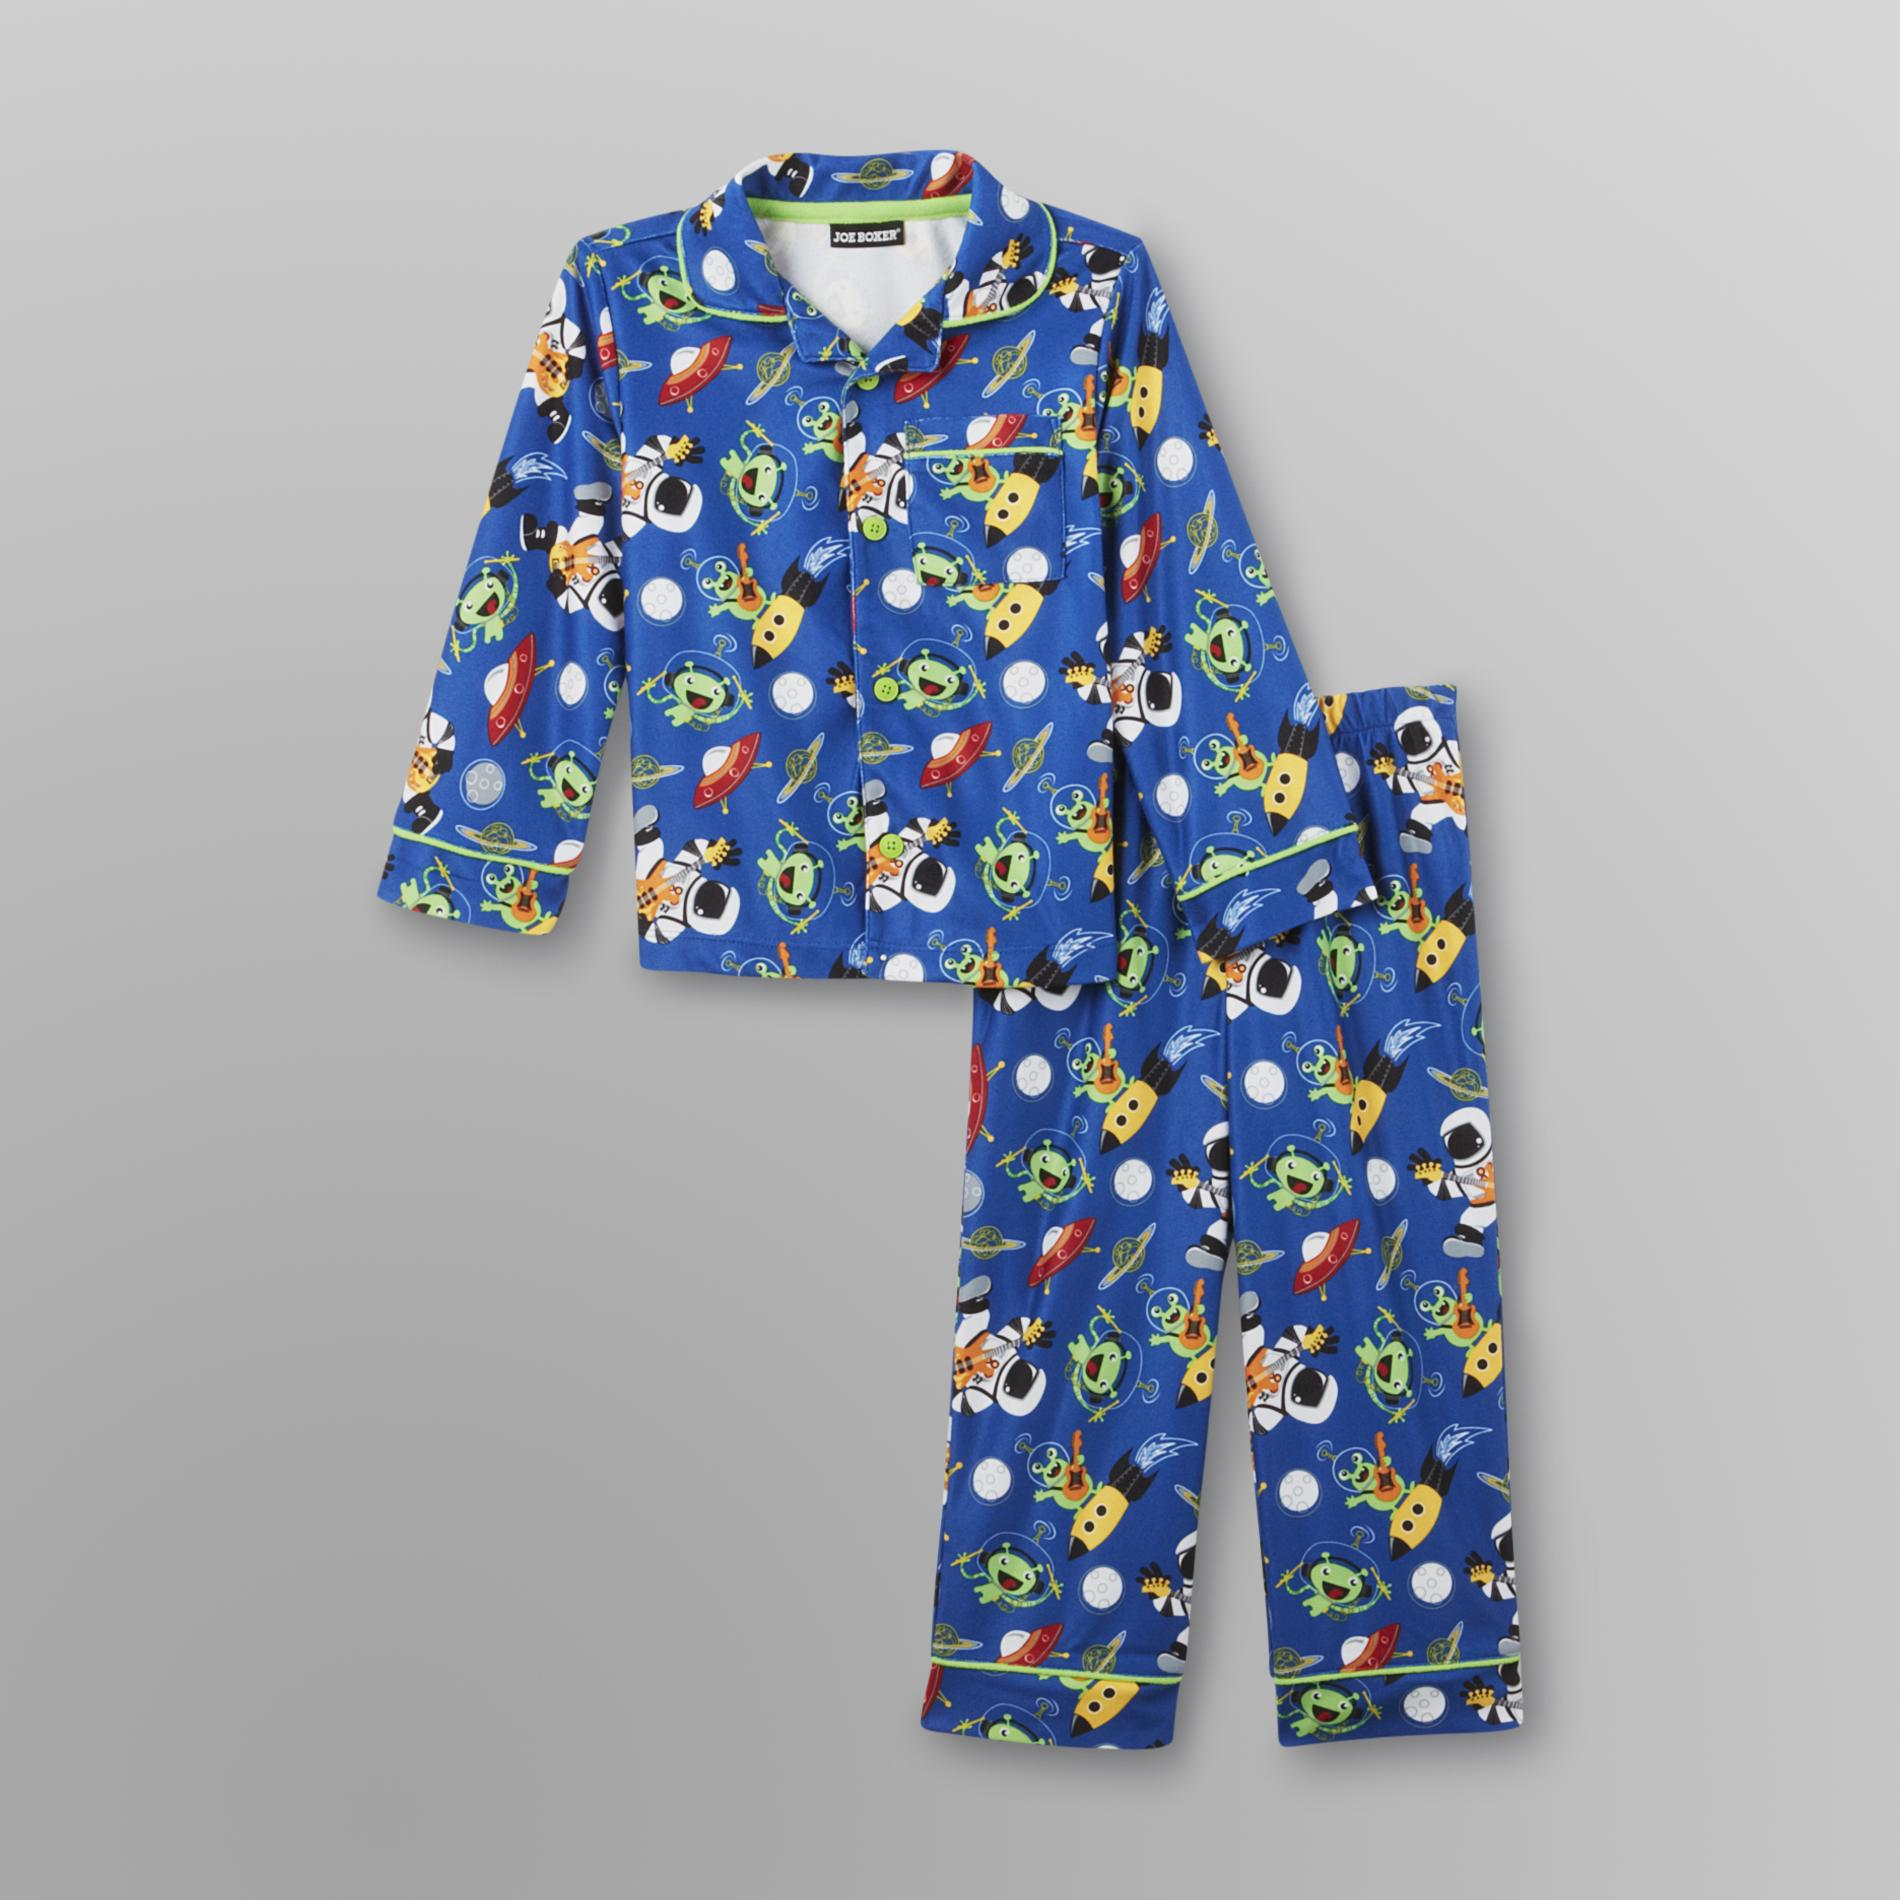 Infant & Toddler Boy's Flannel Pajamas -